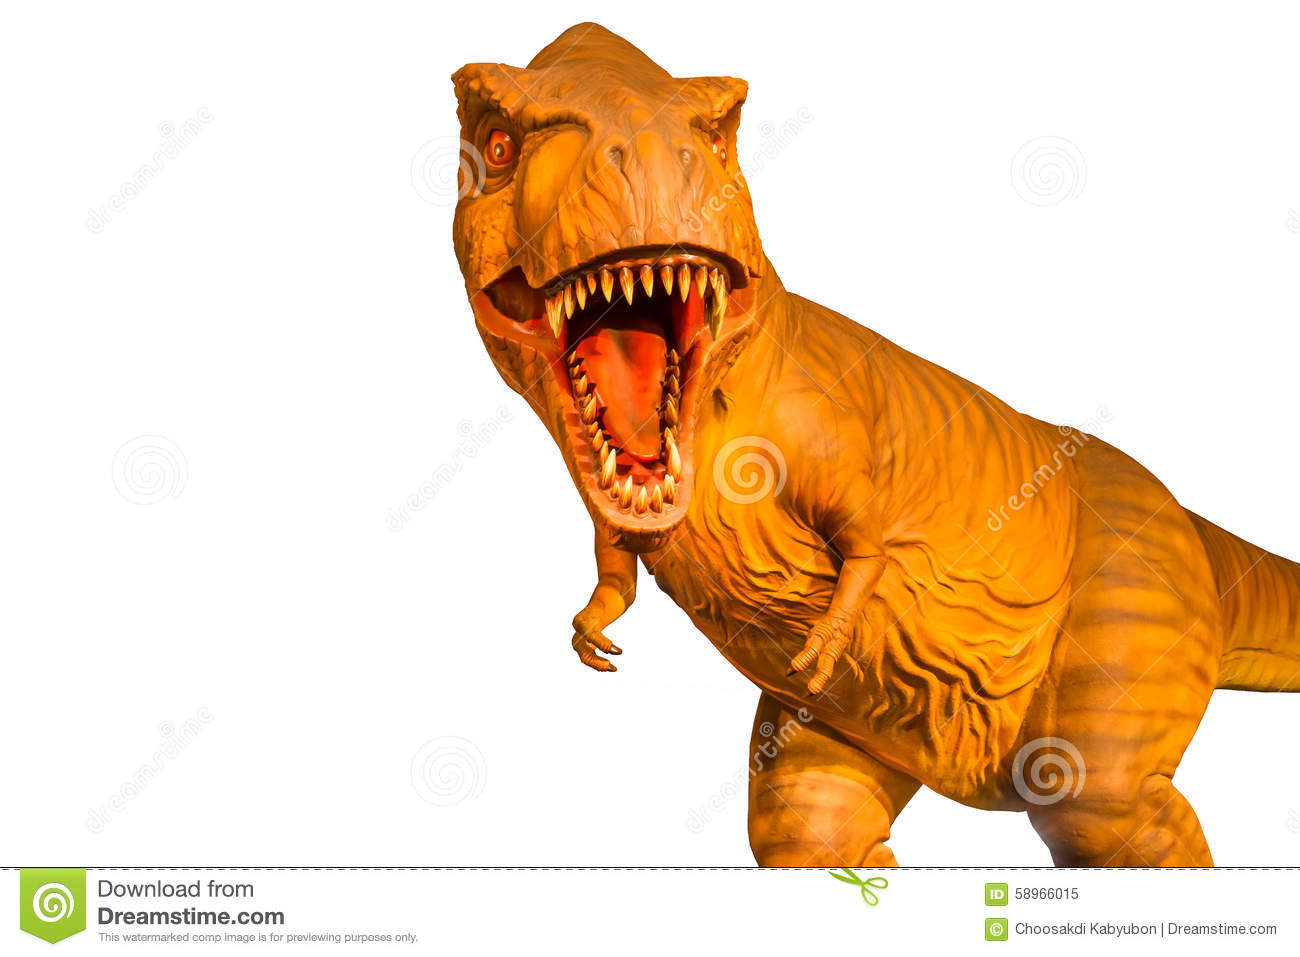 Dinosaur Stock Photo - Image: 58966015